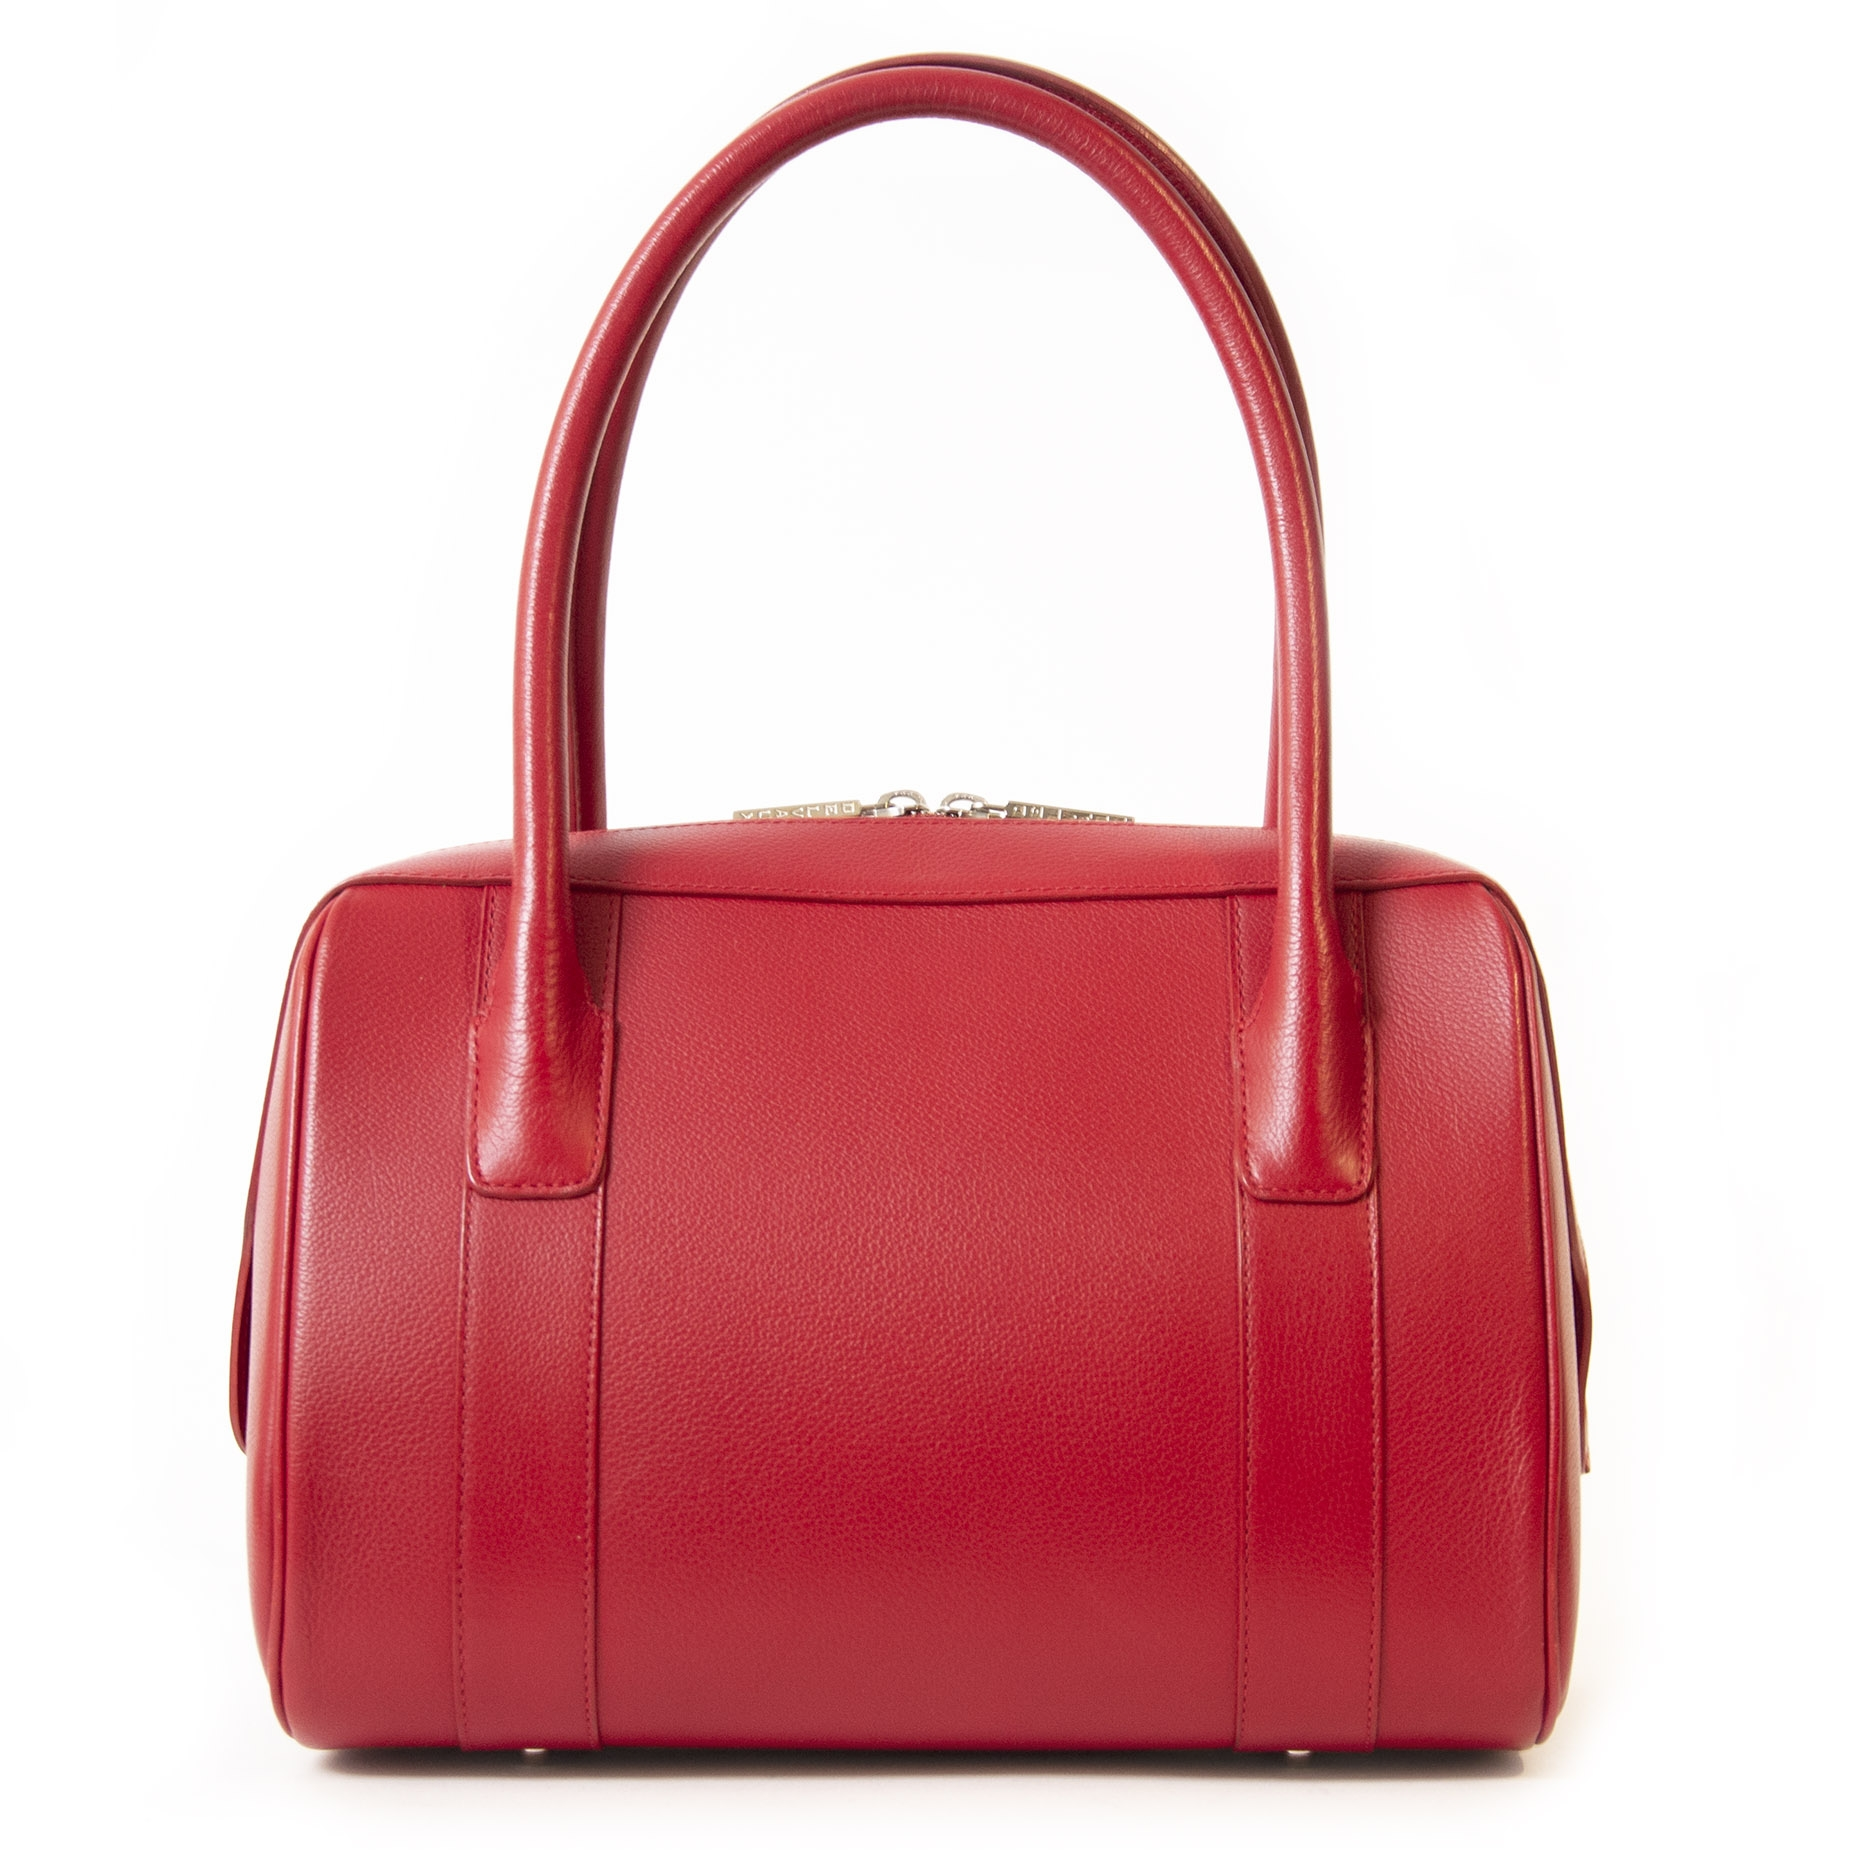 Authentieke tweedehands vintage Delvaux Red Paola Shoulder Bag bij online webshop LabelLOV